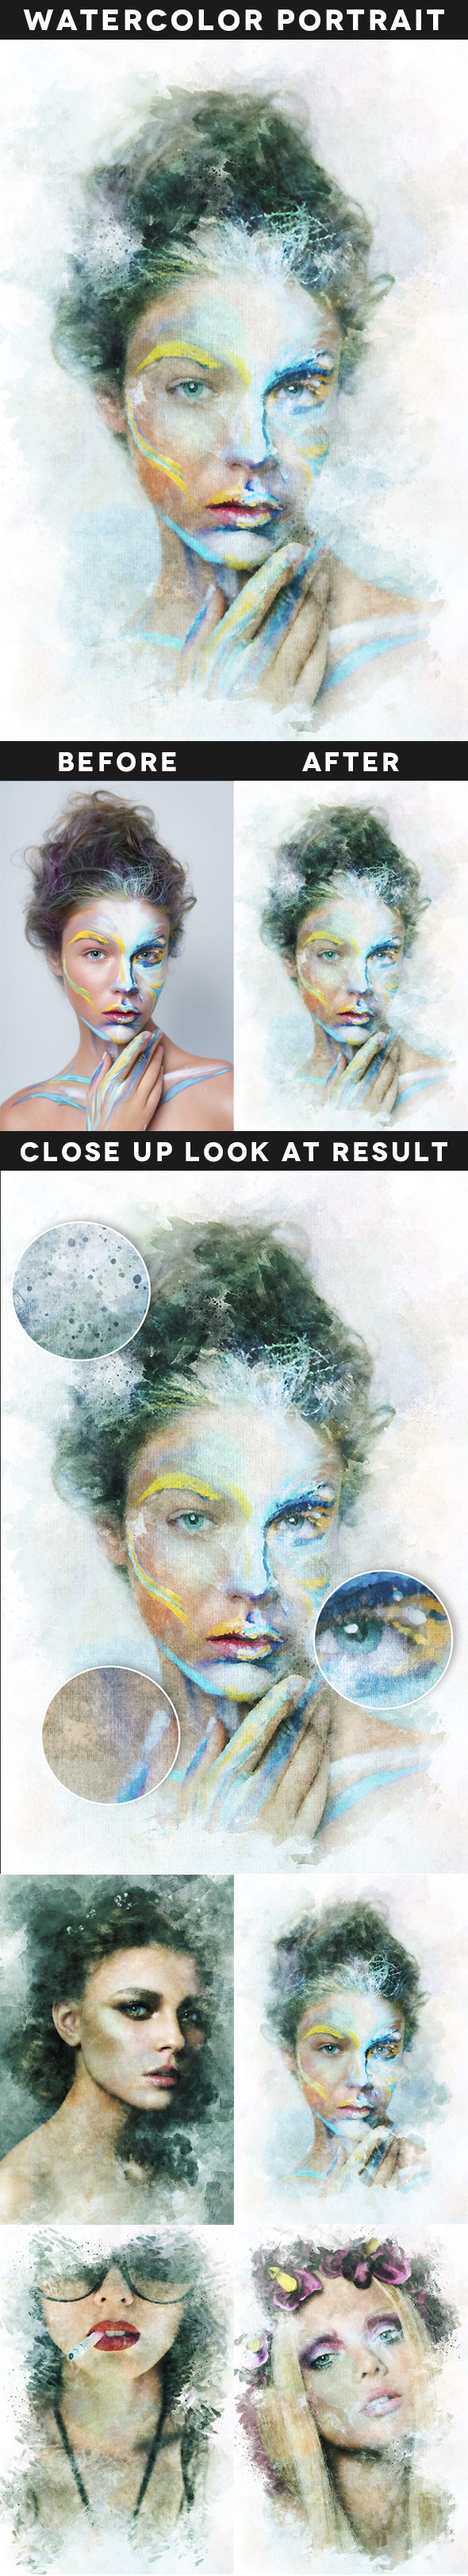 Watercolor Portrait Action - Photo Effects Actions